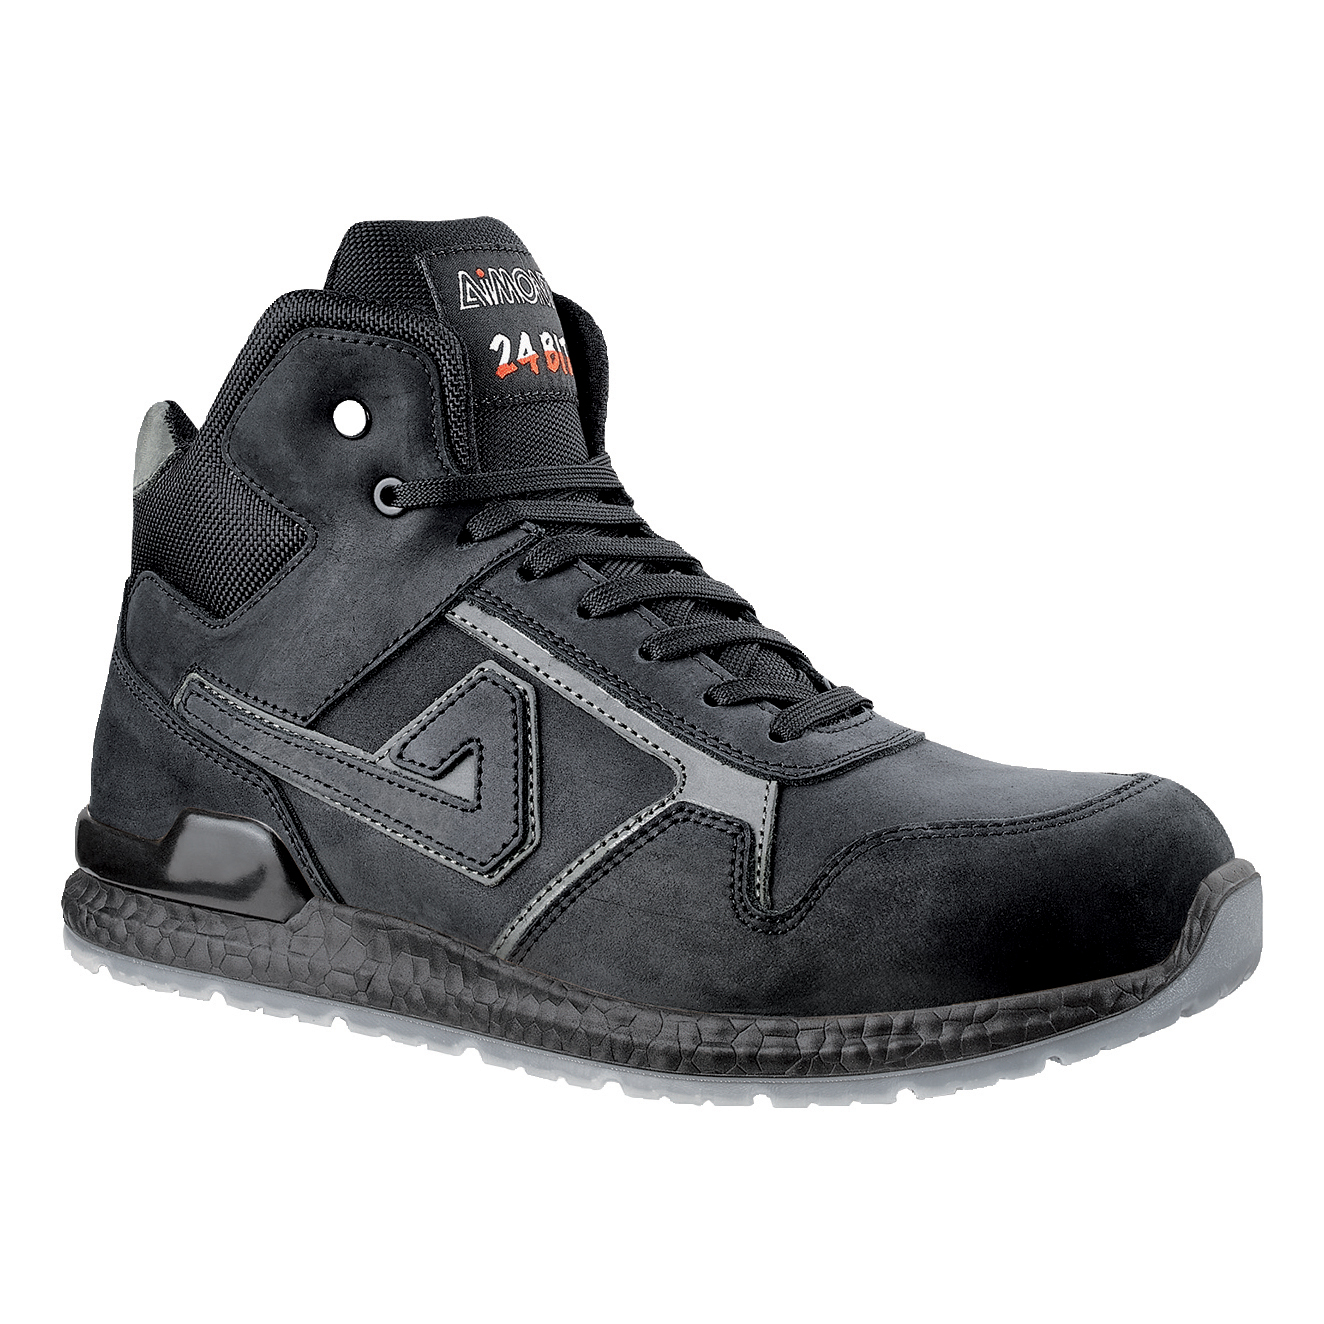 Aimont Kanye Safety Boots Protective Toecap Size 6 Black Ref AB10406 [Pair]